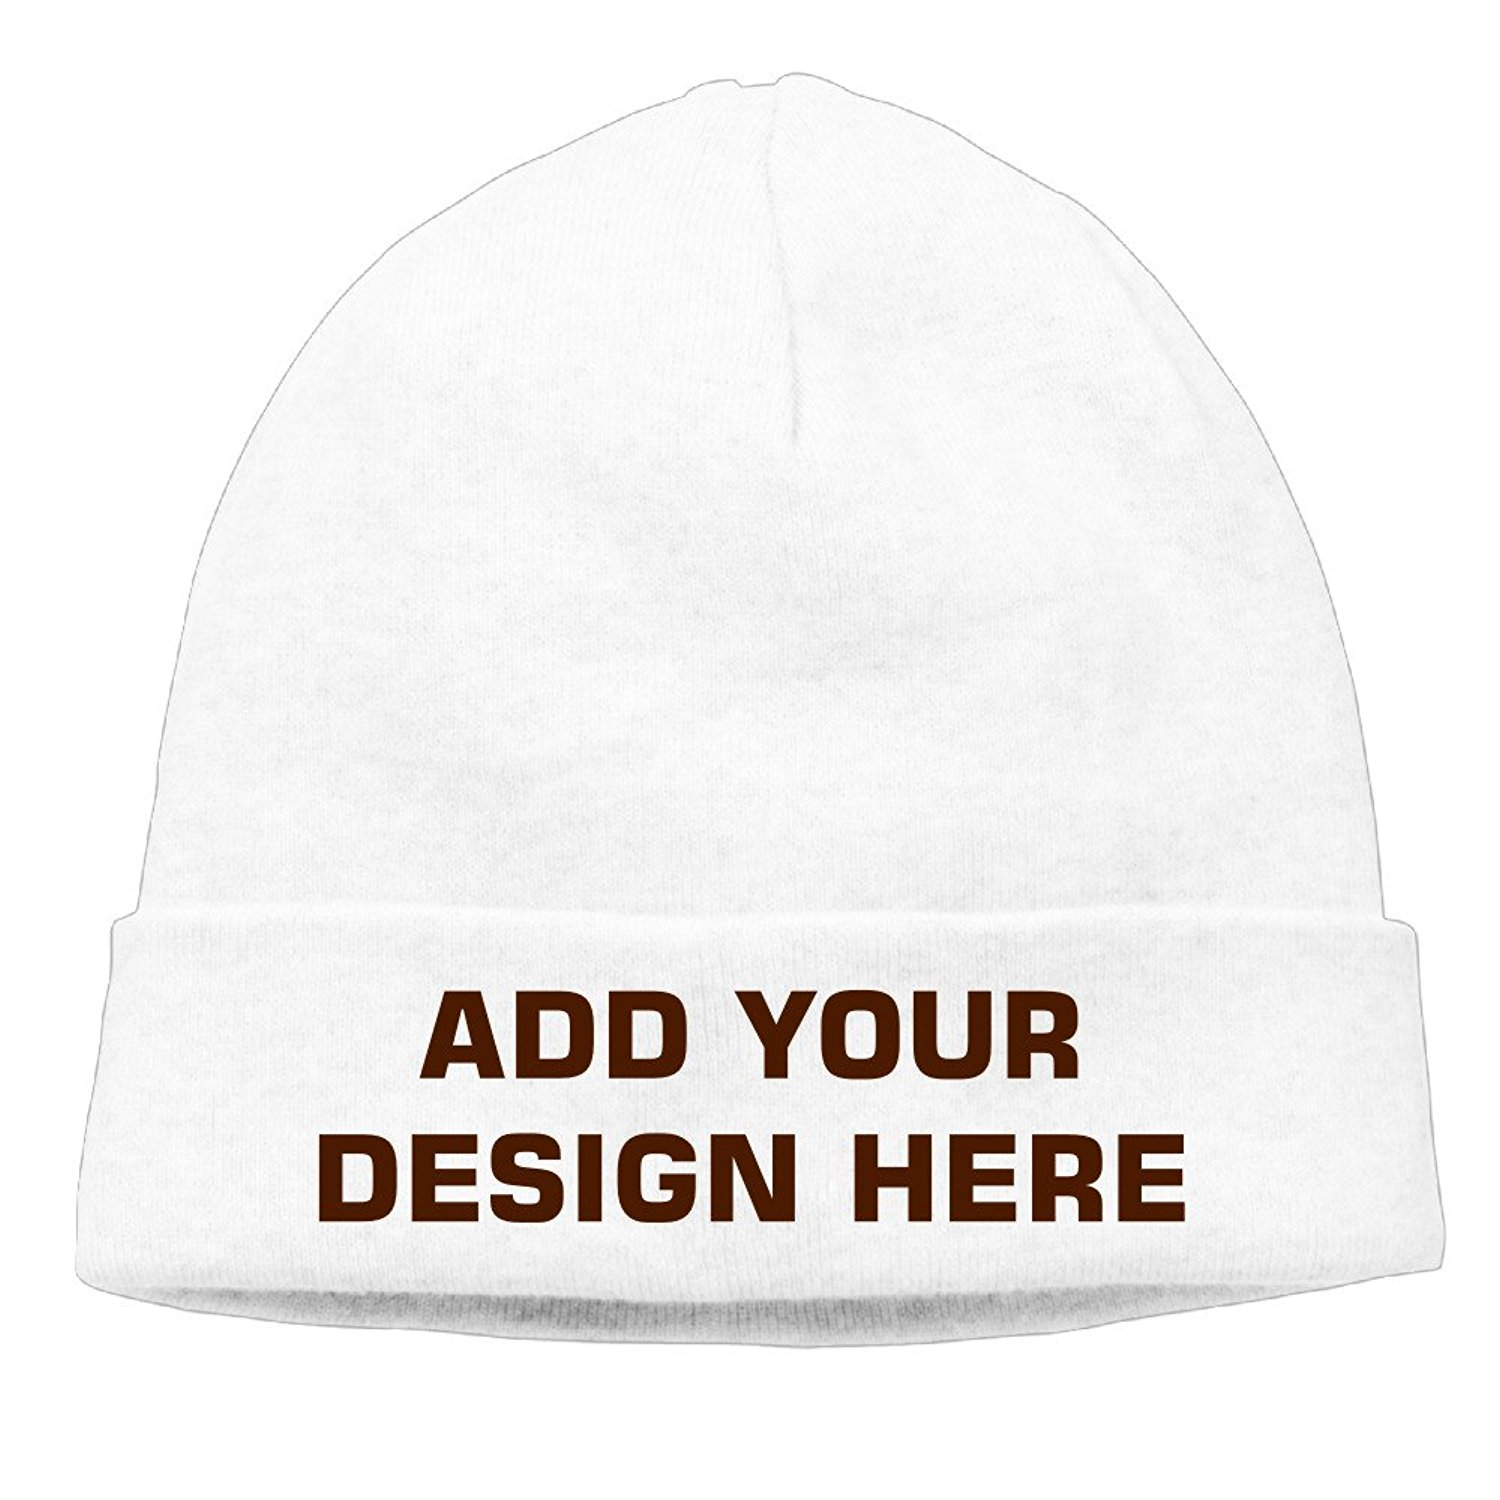 f03207c1fc7 Get Quotations · Customize Your Own Designed Beanie Ski Hat Vintage  Collectible Toboggan Wool Hat